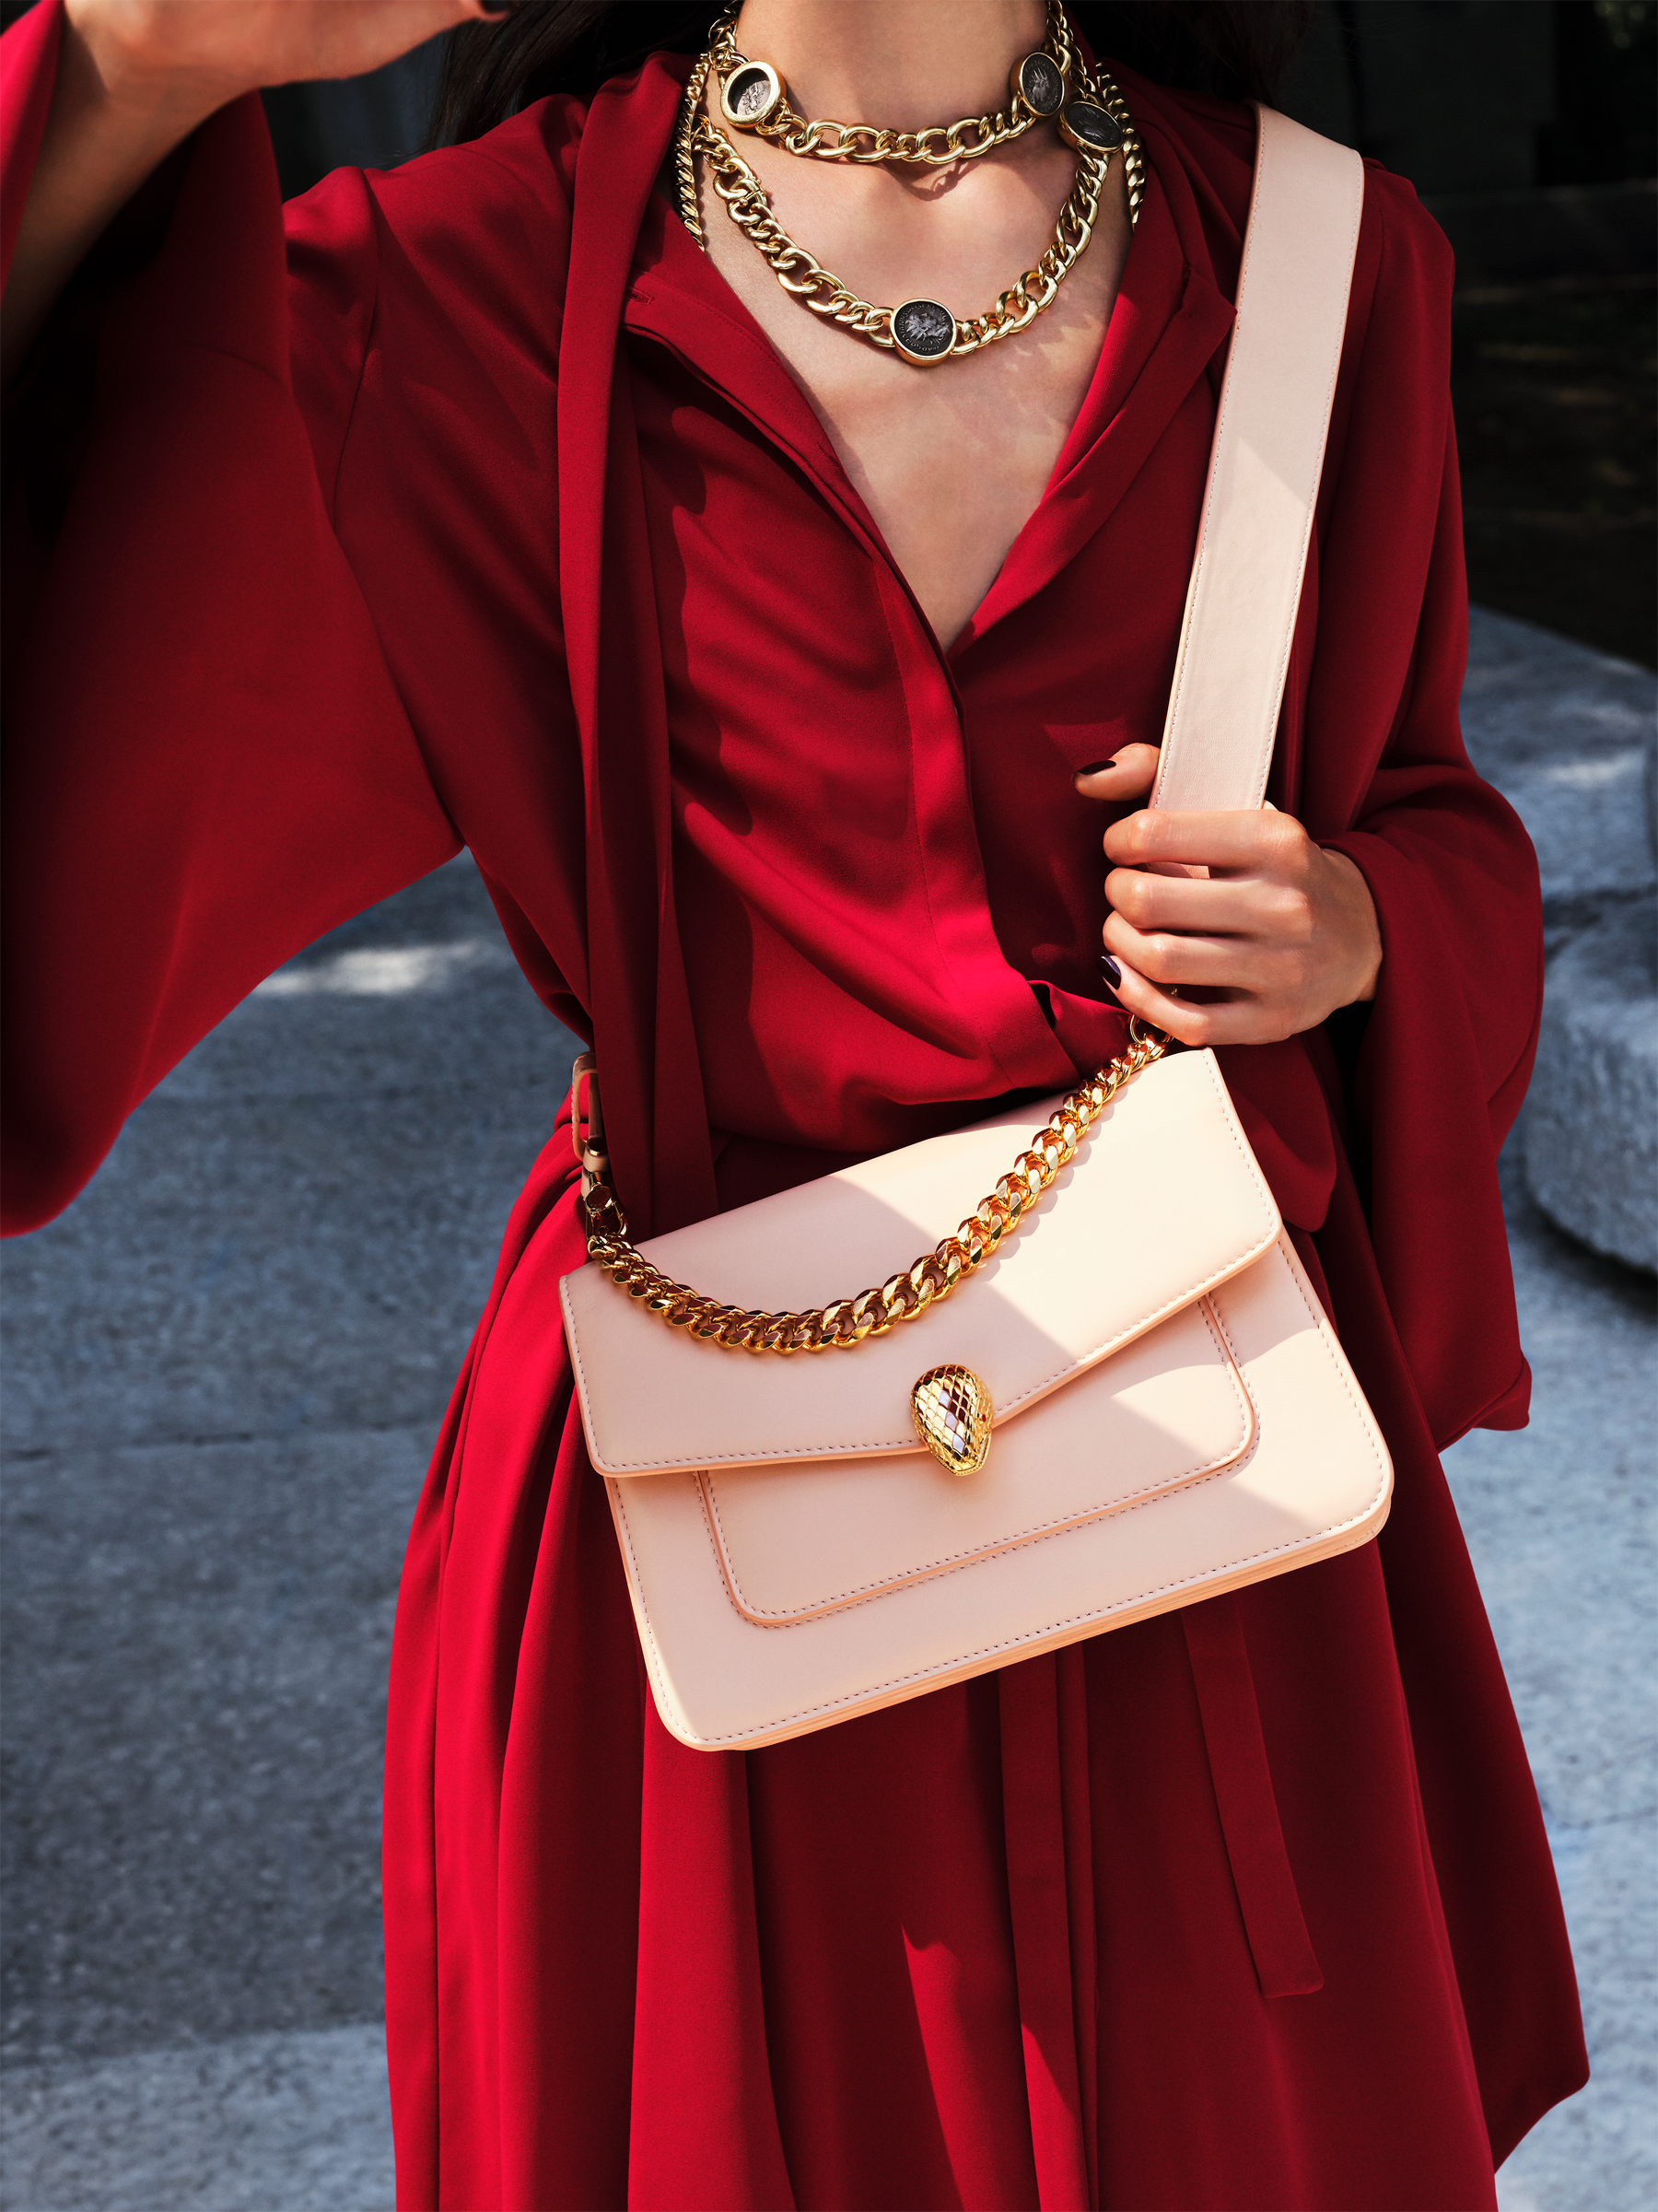 """Serpenti Forever"" maxi chain crossbody bag in Amaranth Garnet red nappa leather, with Pink Spinel fuchsia nappa leather inner lining. New Serpenti head closure in gold-plated brass, finished with small red carnelian scales in the middle and red enamel eyes. 1138-MCN image 5"